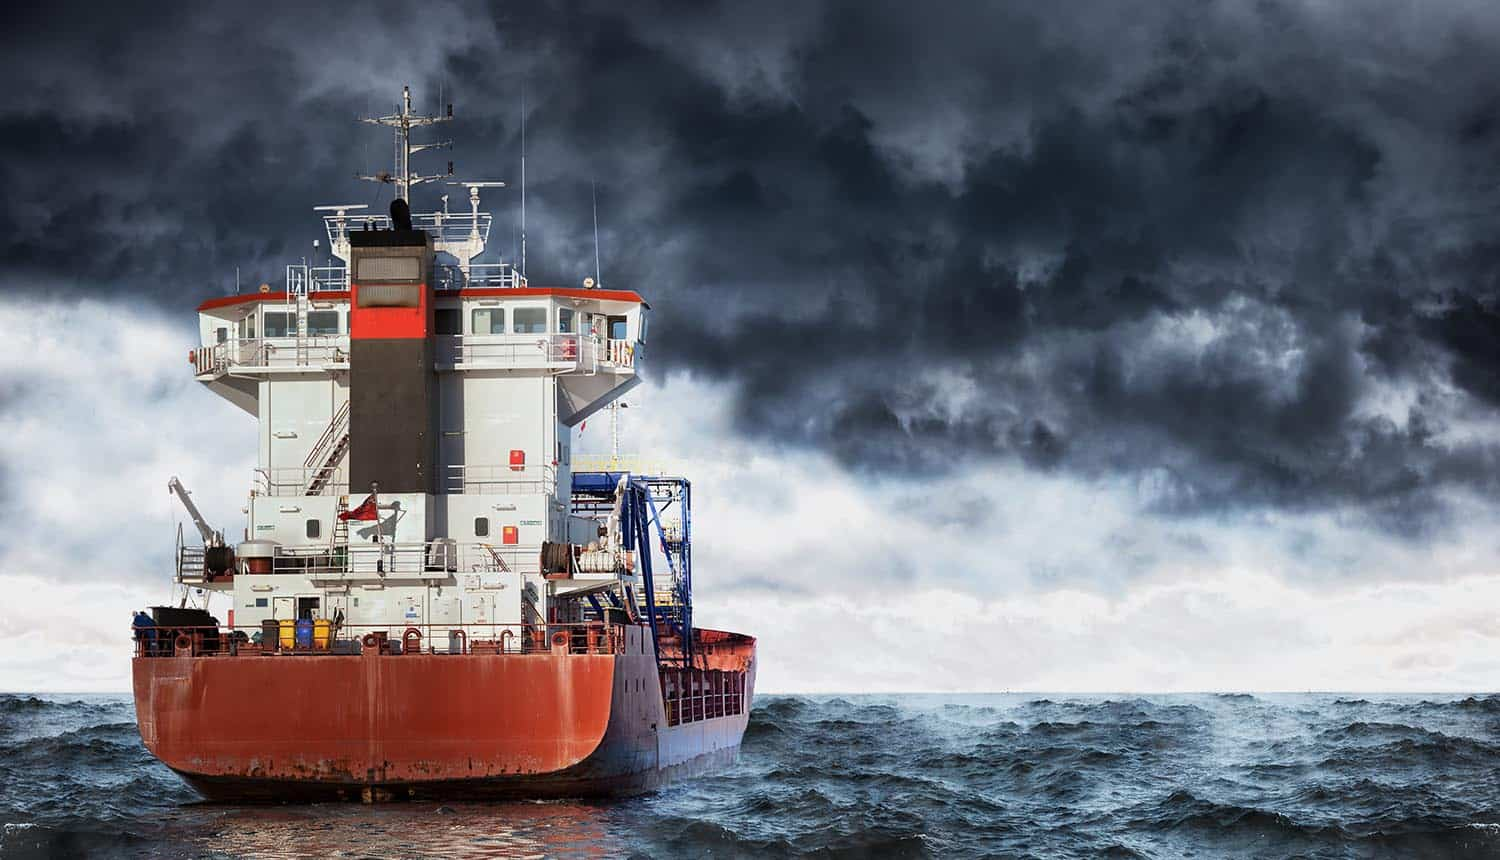 Cargo ship at sea during a storm showing business risk of cyber attacks